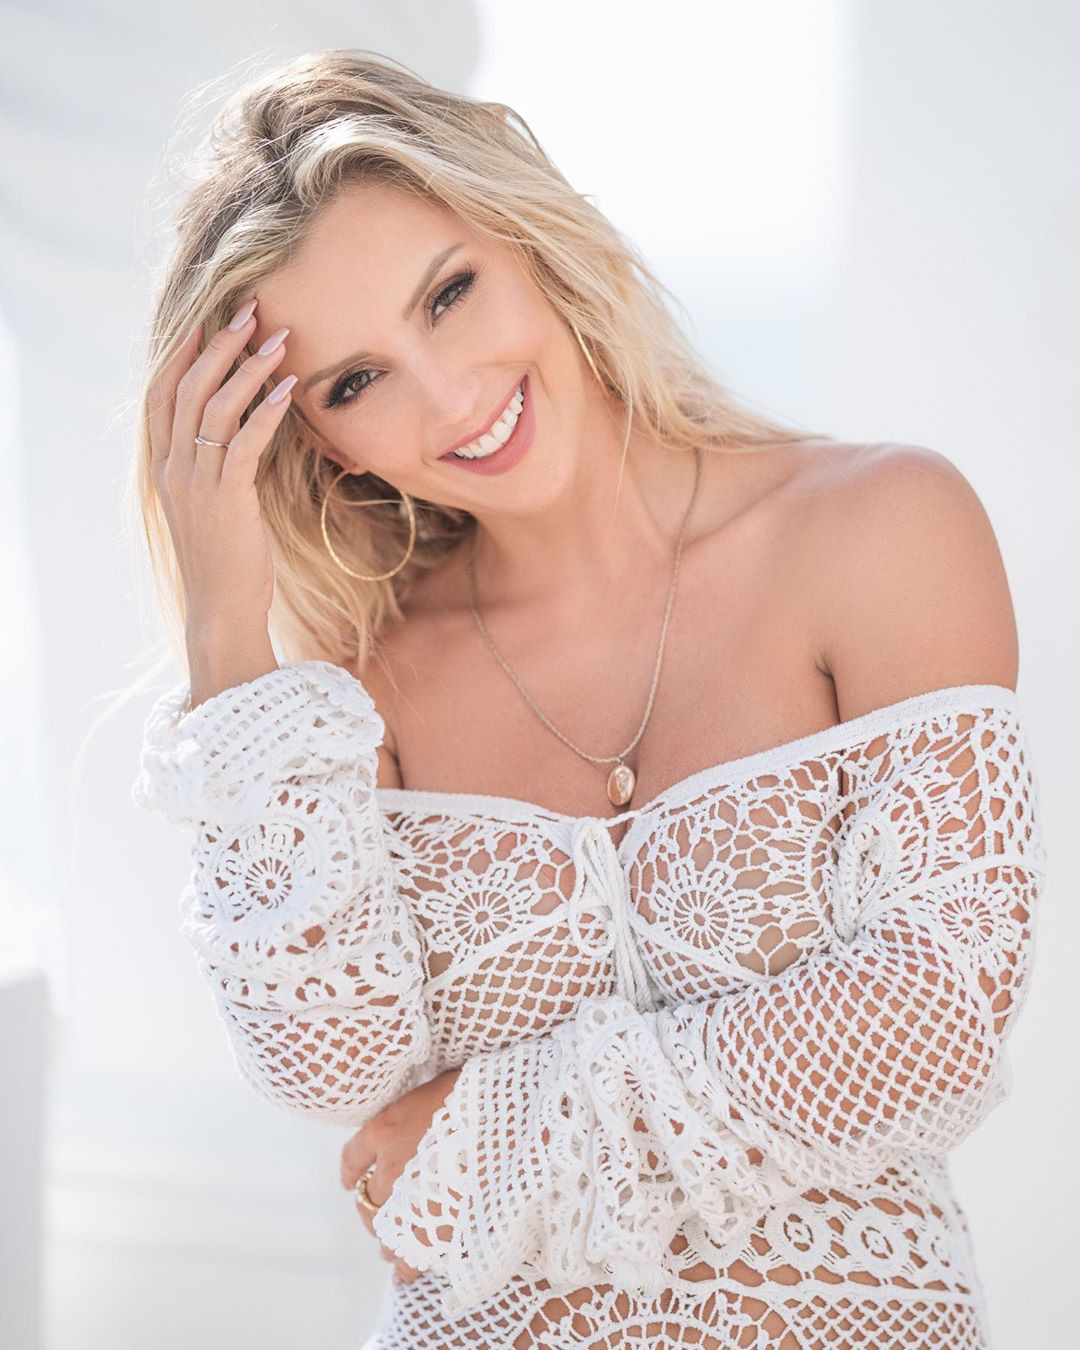 Amanda Paris Hot Pictures, MNML Health, Photo shoot